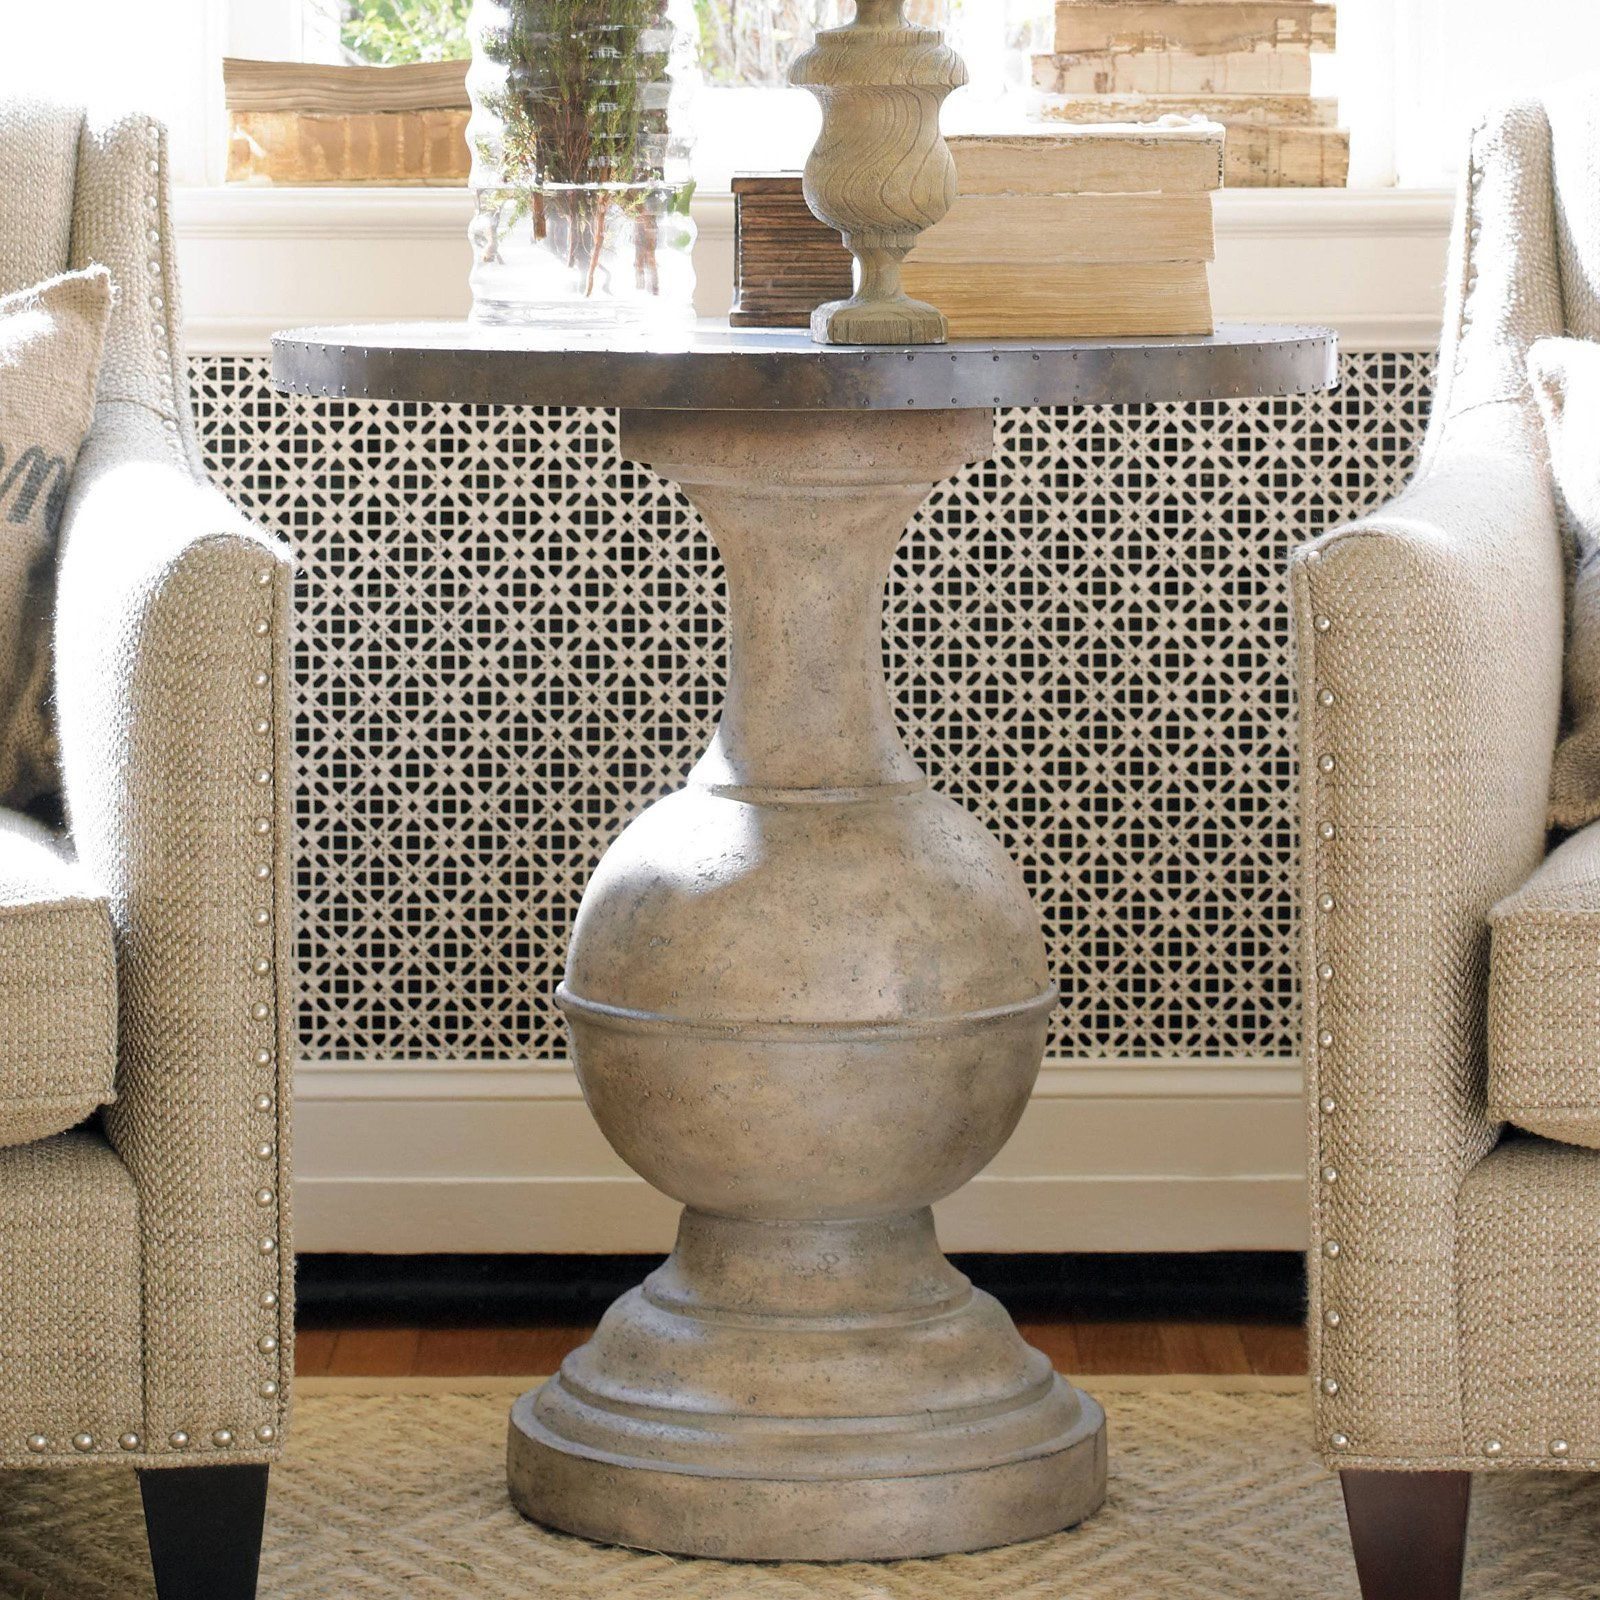 hooker furniture round accent table create its modern organic living room sets masterpiece the pairs rustic brass top with umbrella base large mosaic nightstands dining legs